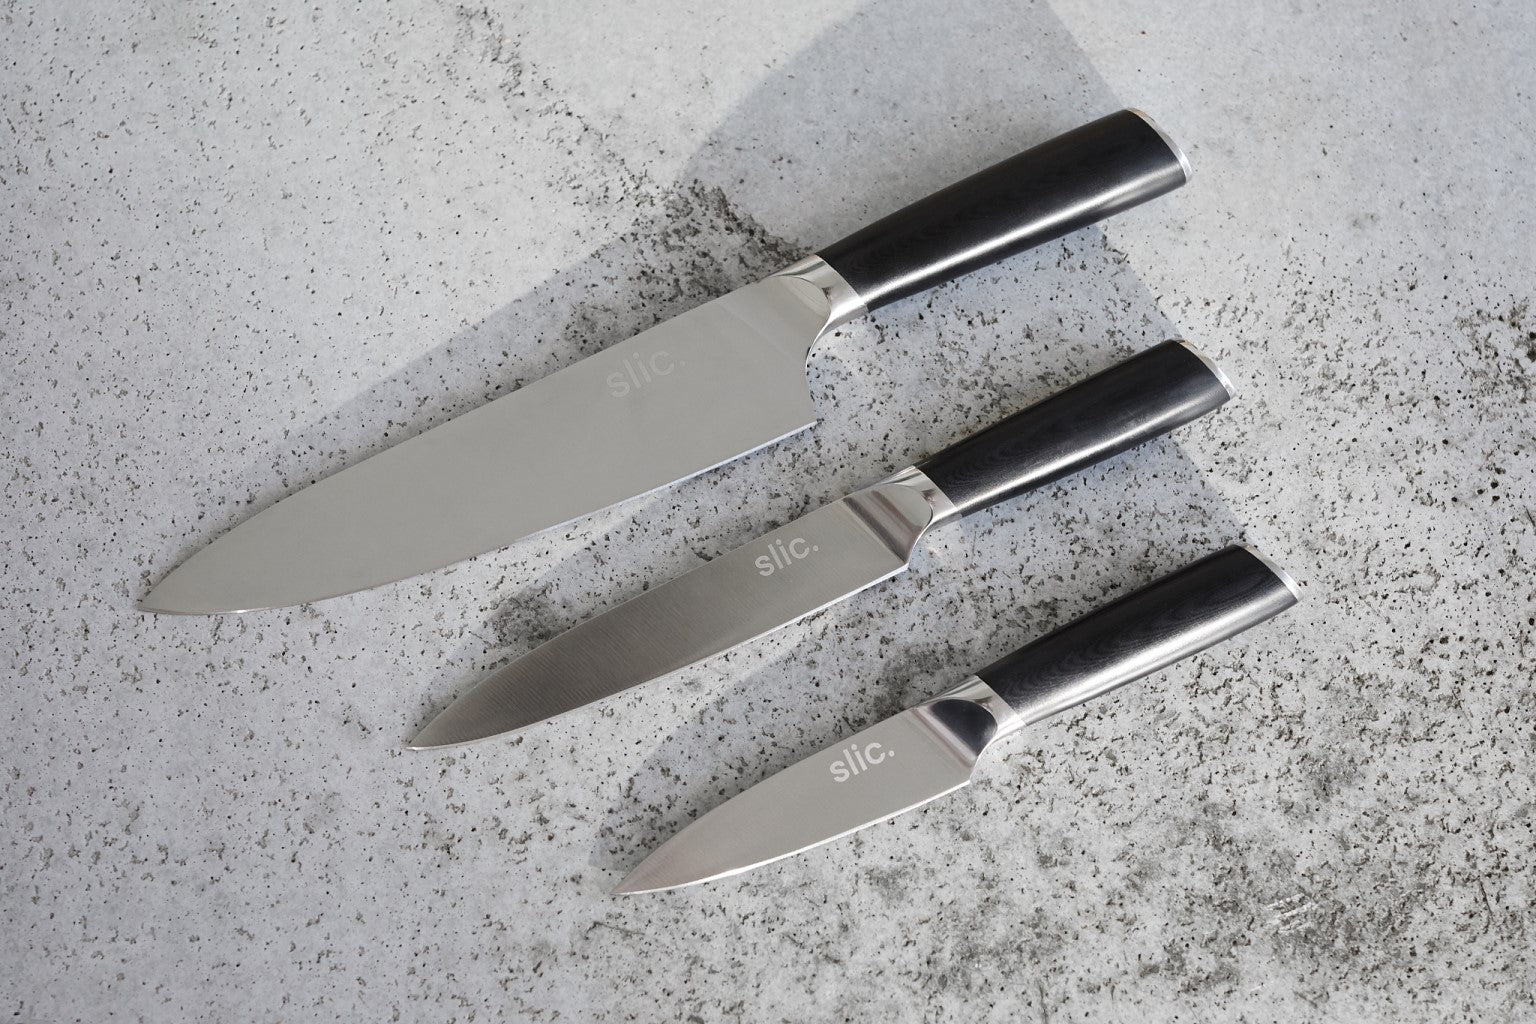 Essentials knife set